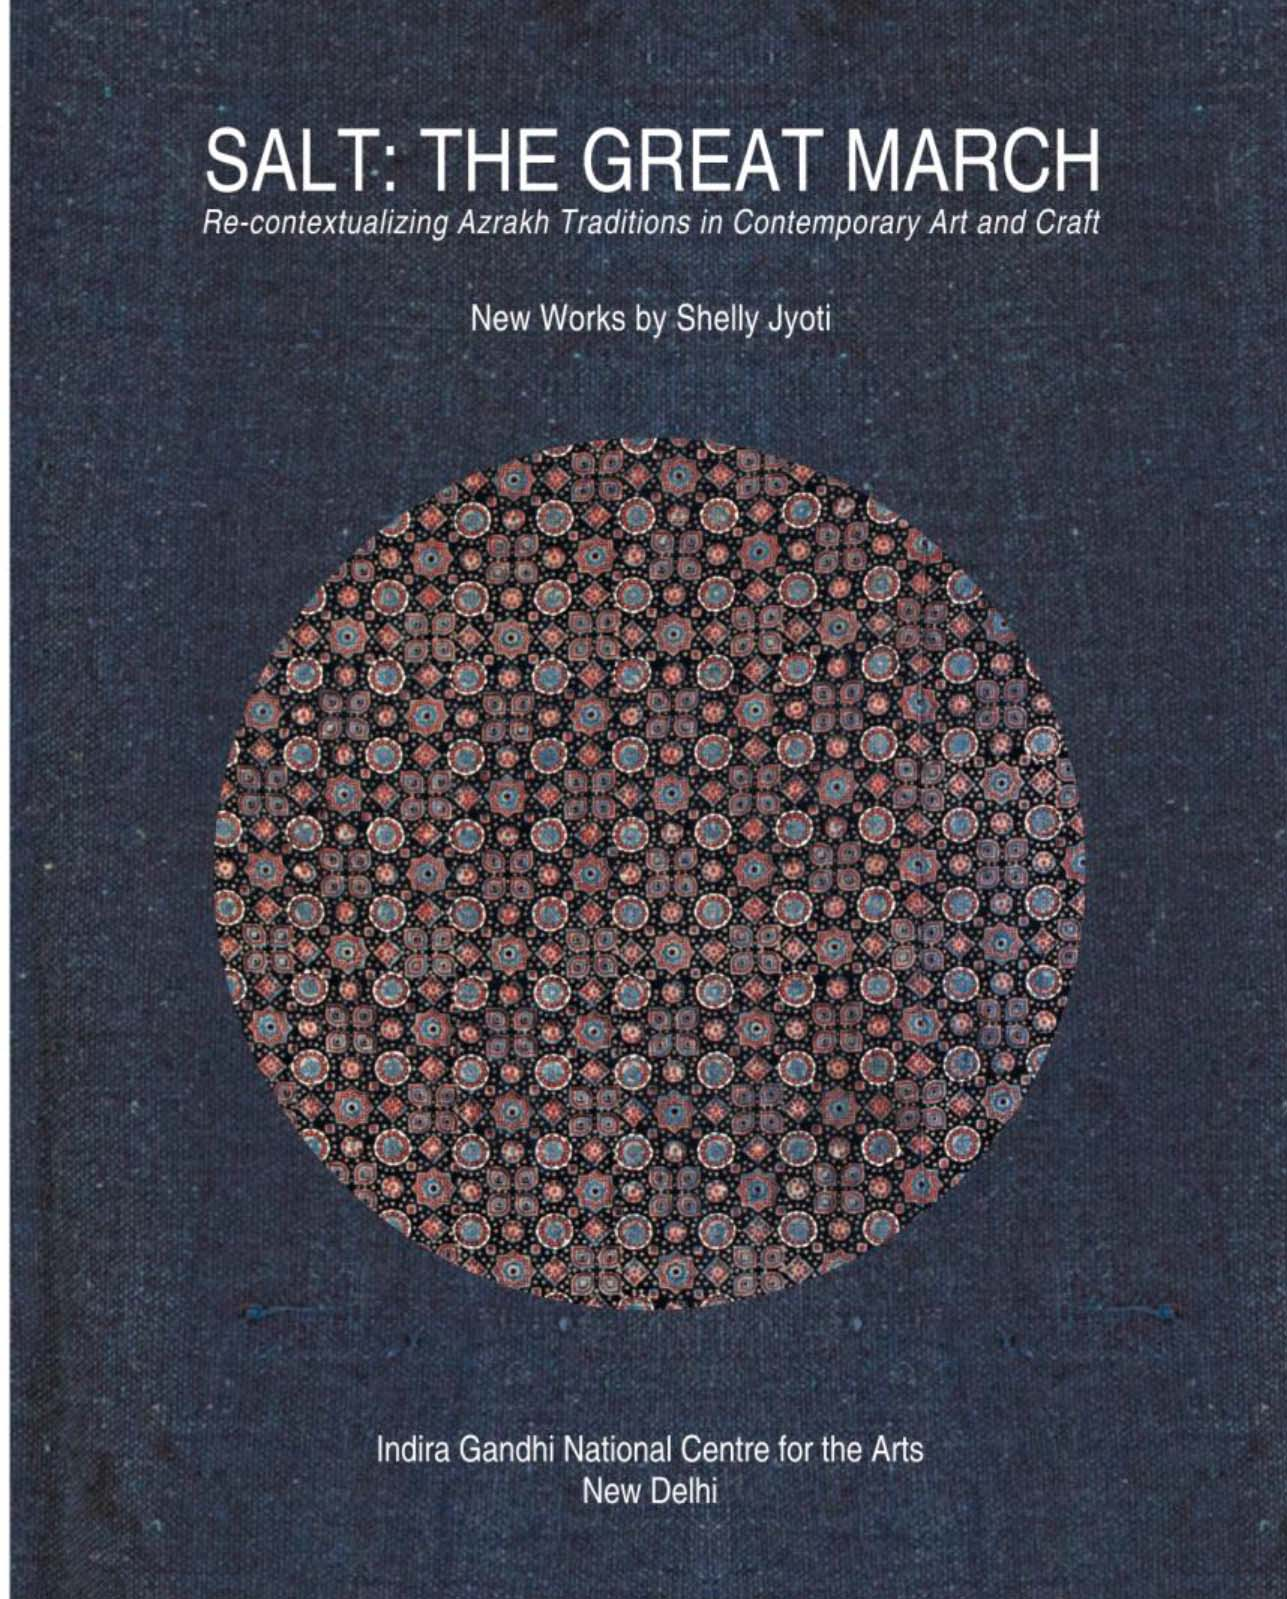 IGNCA- India Publishes catalog SALT: THE GREAT MARCH